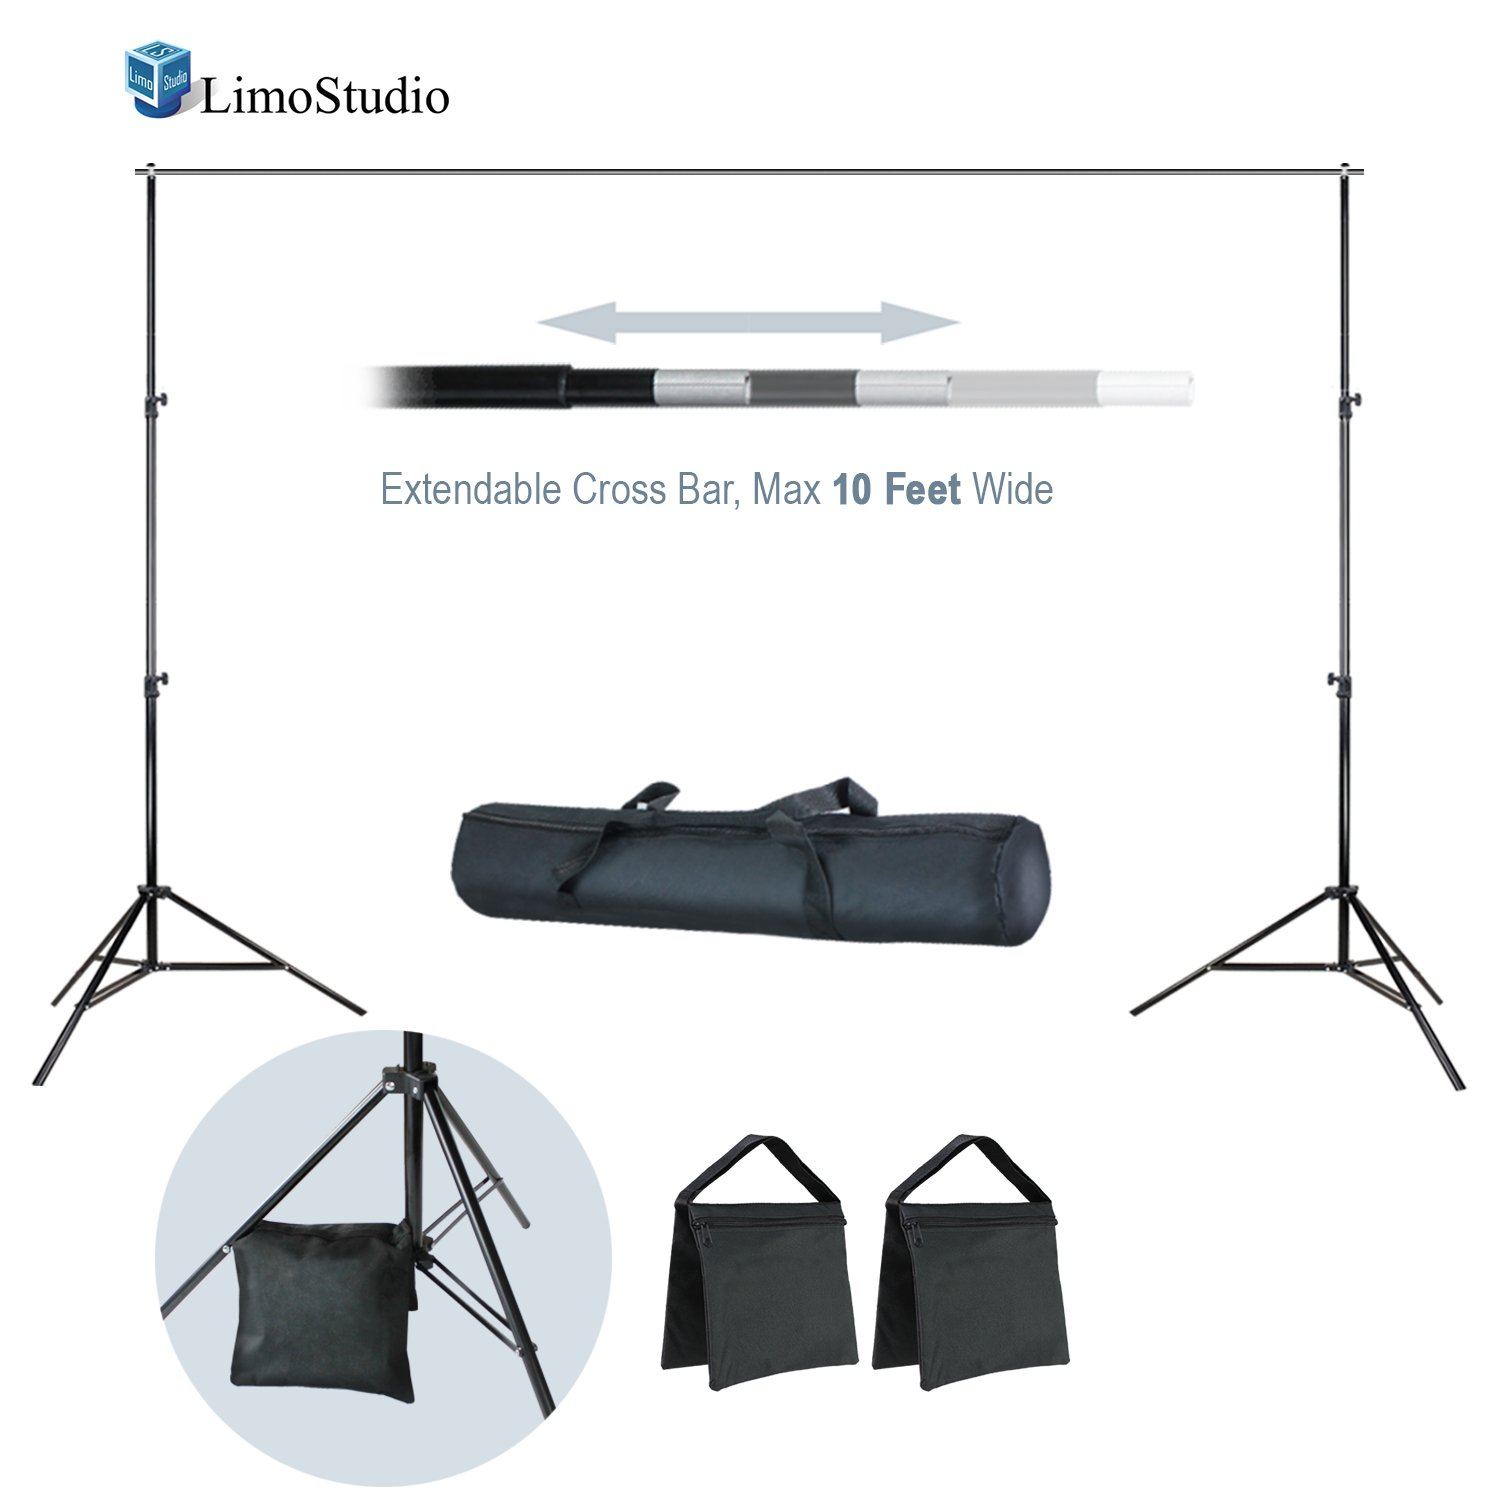 LimoStudio 10 ft Wide x 7 ft Tall Backdrop Muslin Support Stand and Cross Bar Kit with Sand Bag and Carry Bag for Photo Video Studio, AGG2600 by LimoStudio